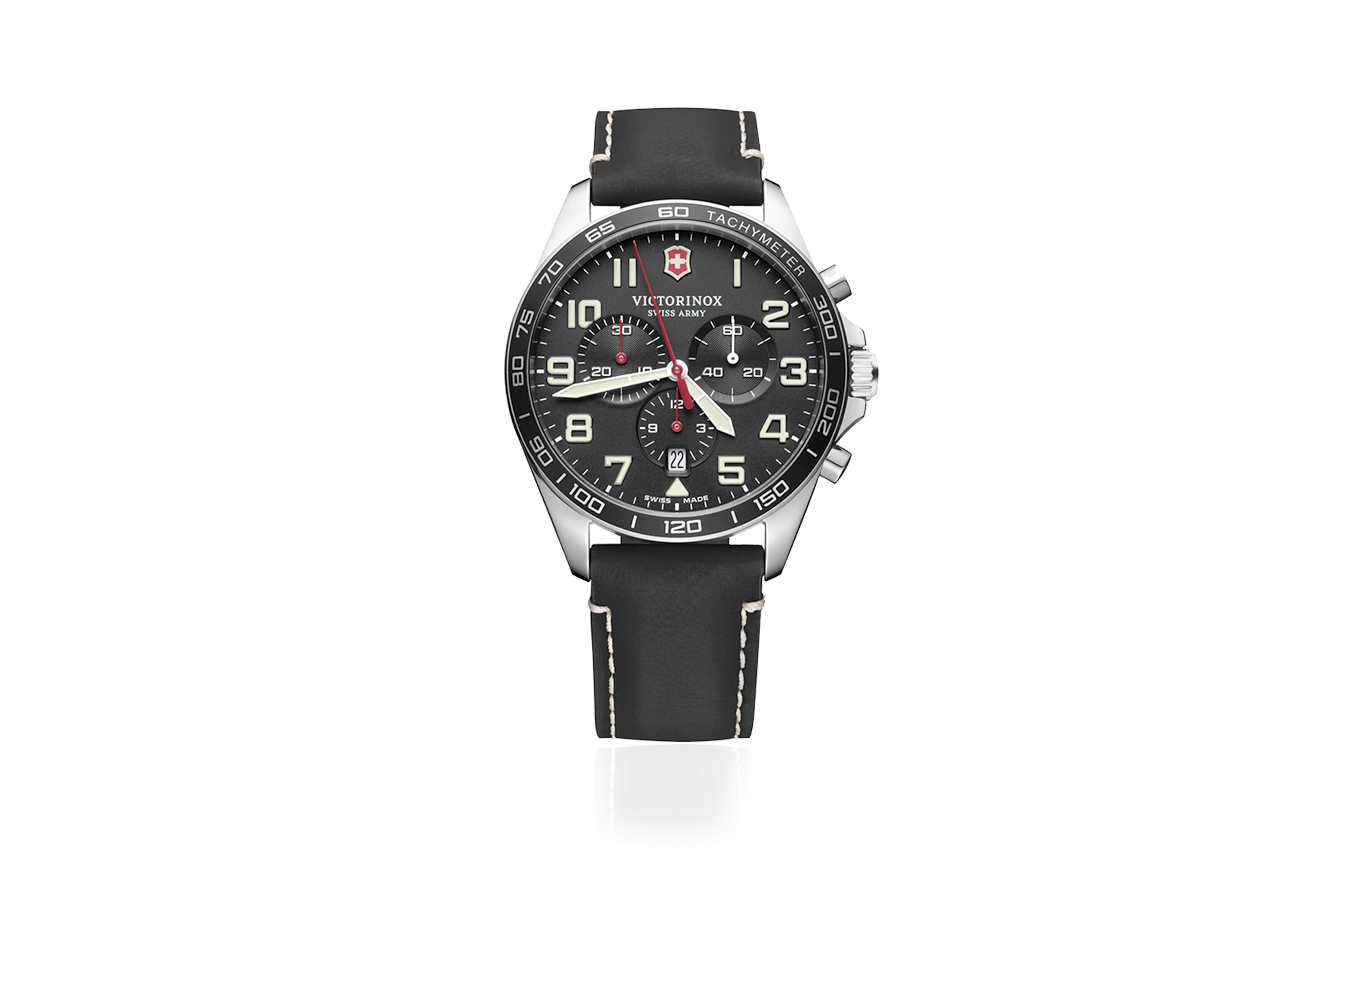 Fieldforce Victorinox